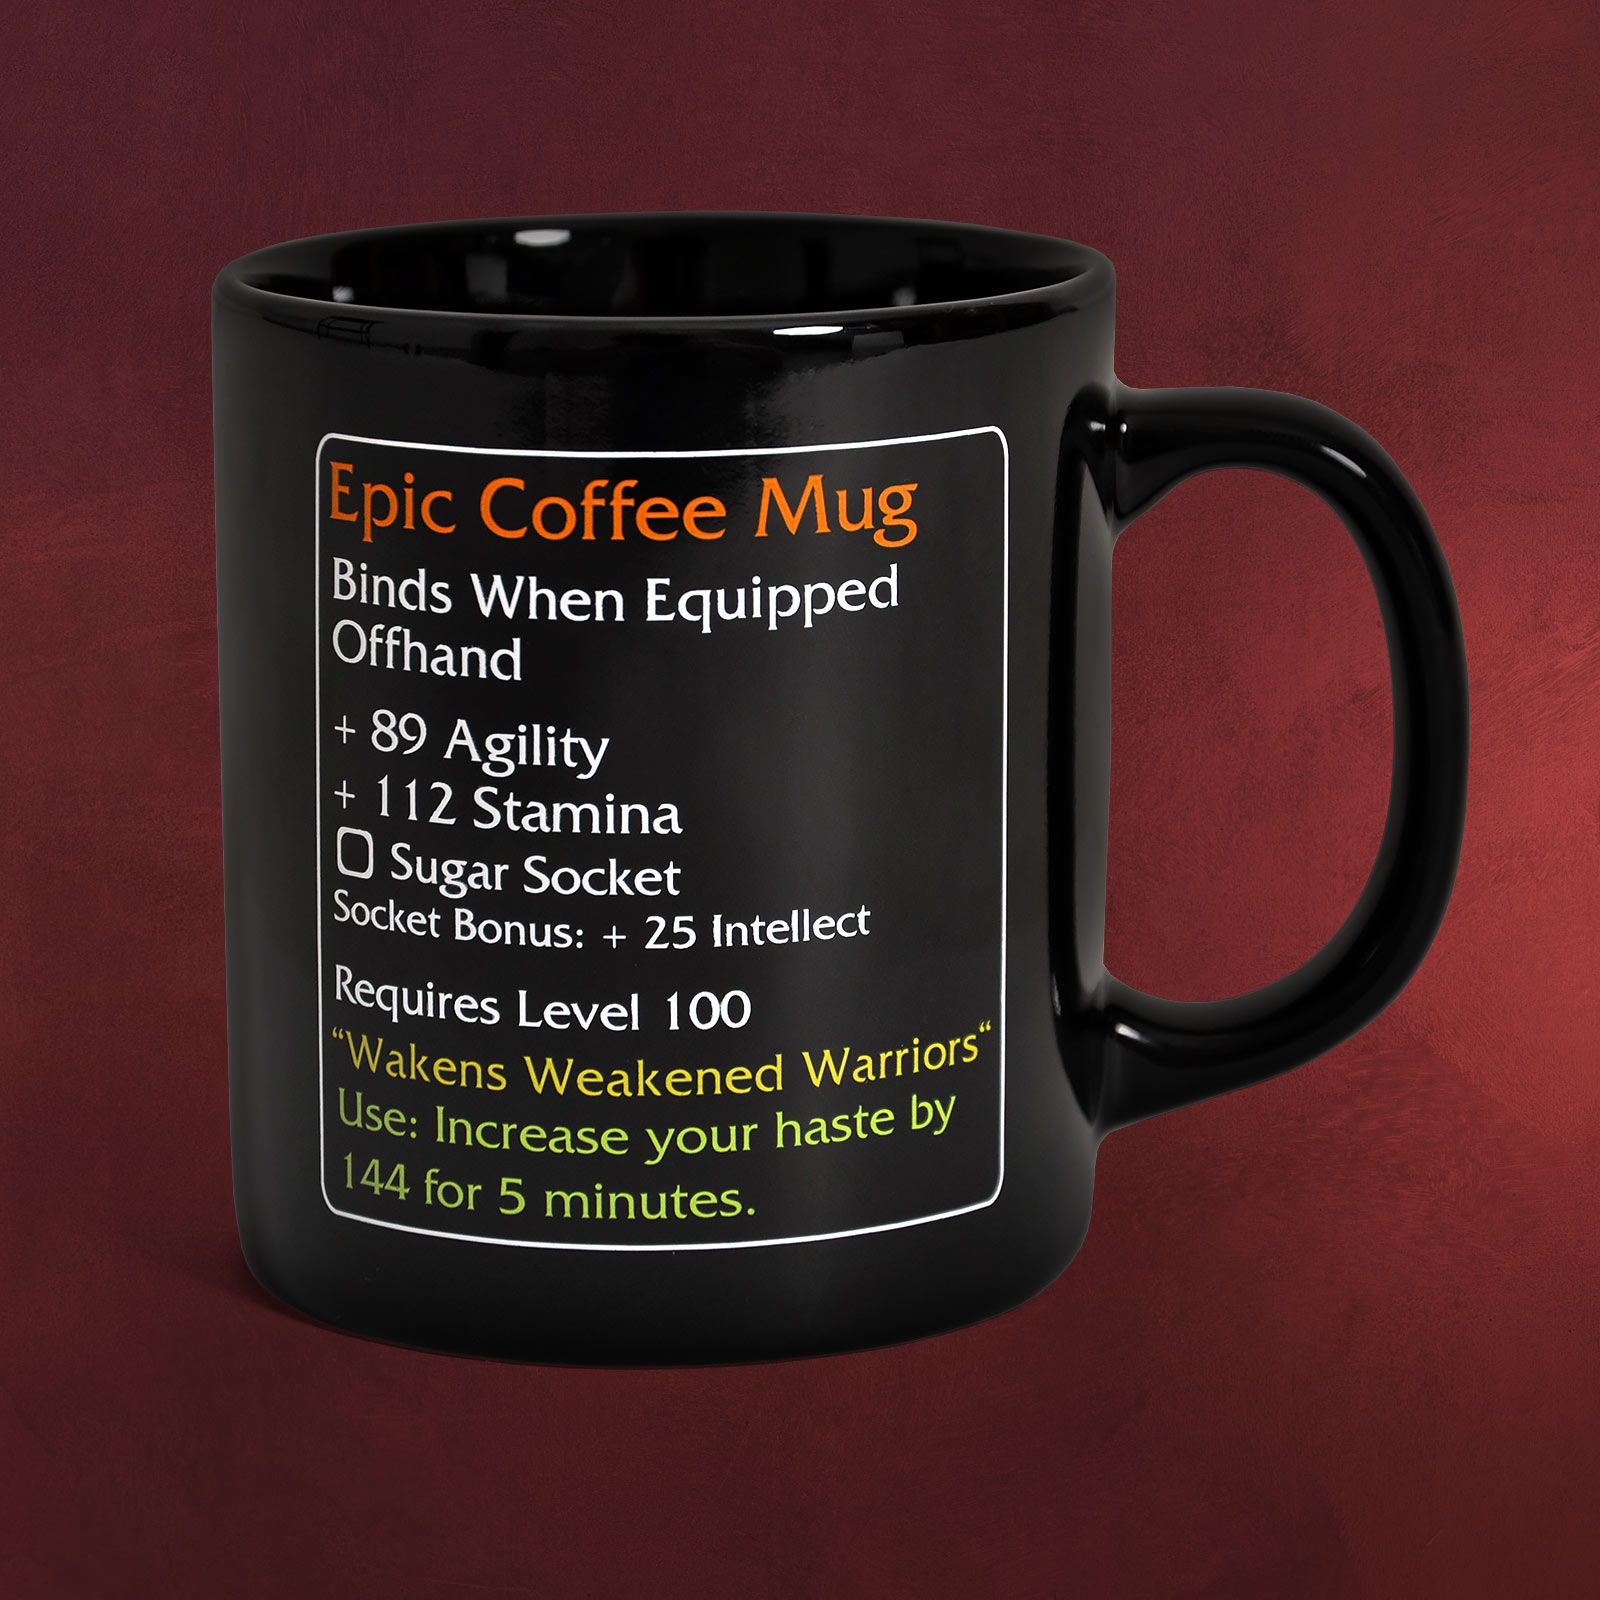 Worlds best doctor coffee mugs - Epic Coffee Mug